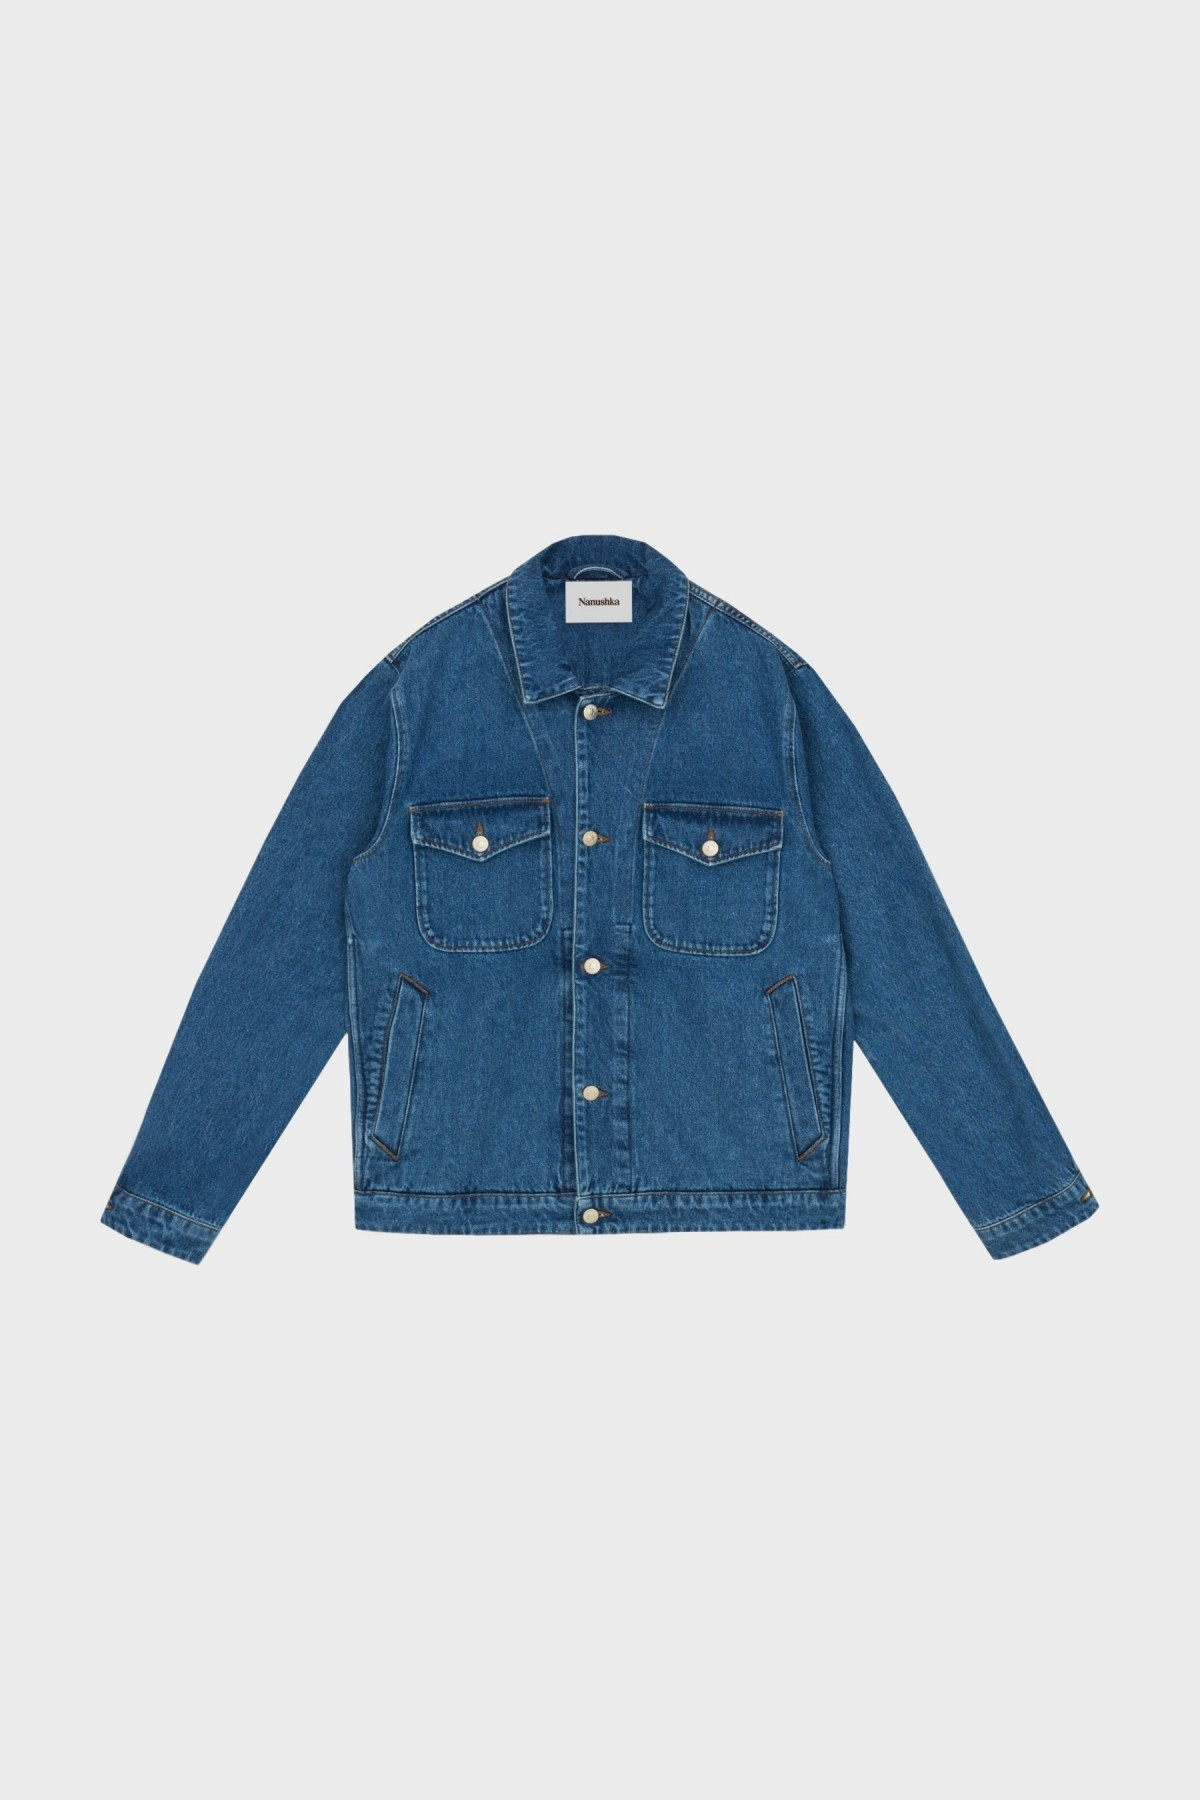 Nanushka Pax Denim Jacket in Mid Wash